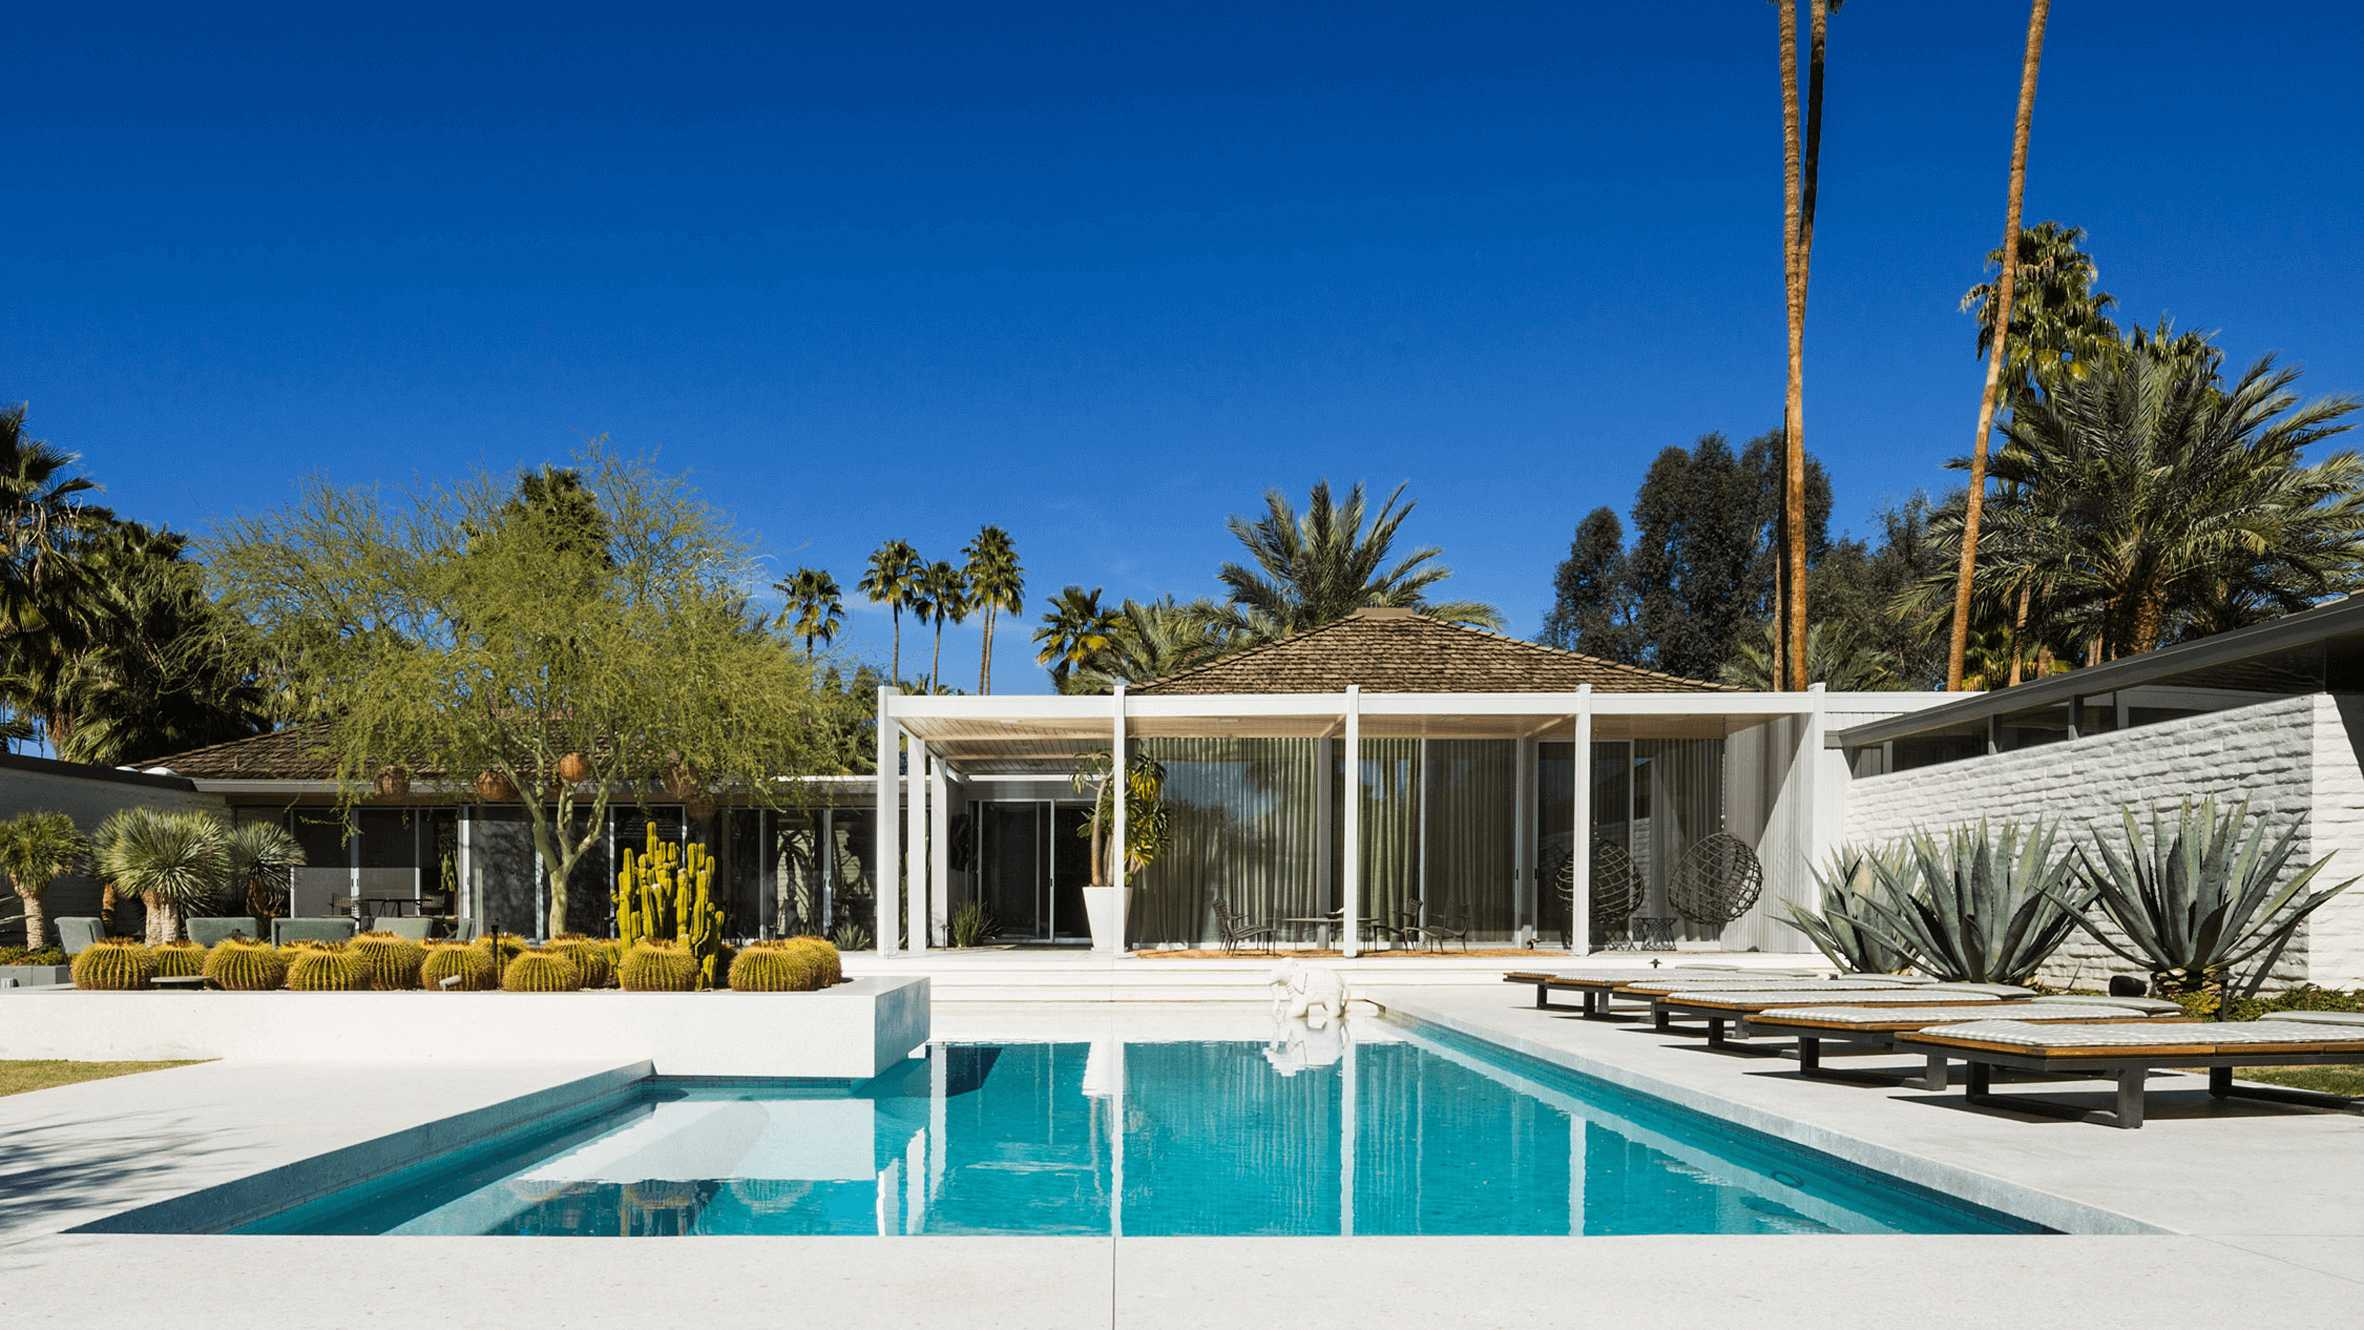 this-is-the-Abernathy-Residence-located-in-Palm-Springs-and-designed-by-William-F-Cody-in-1962